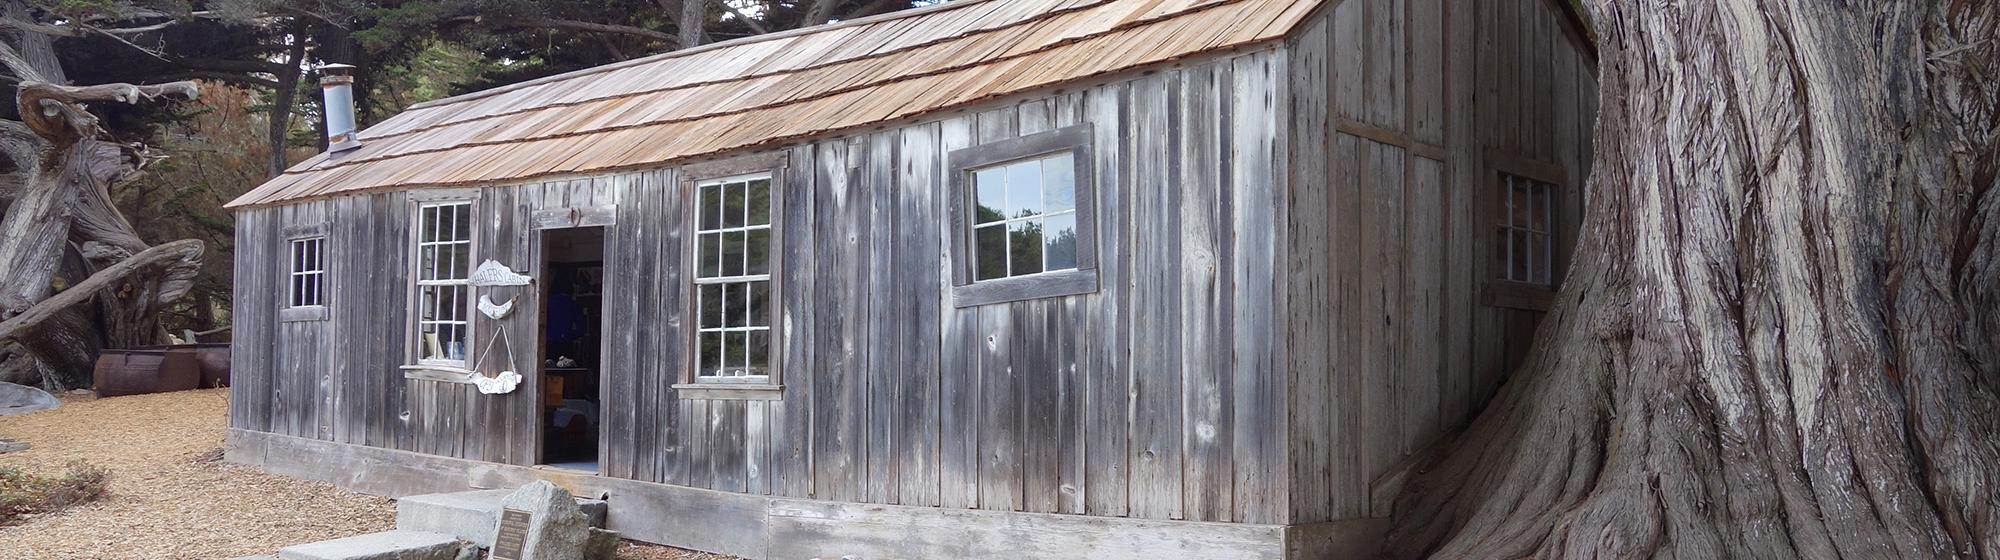 photo of the Whalers' Cabin at Point Lobos